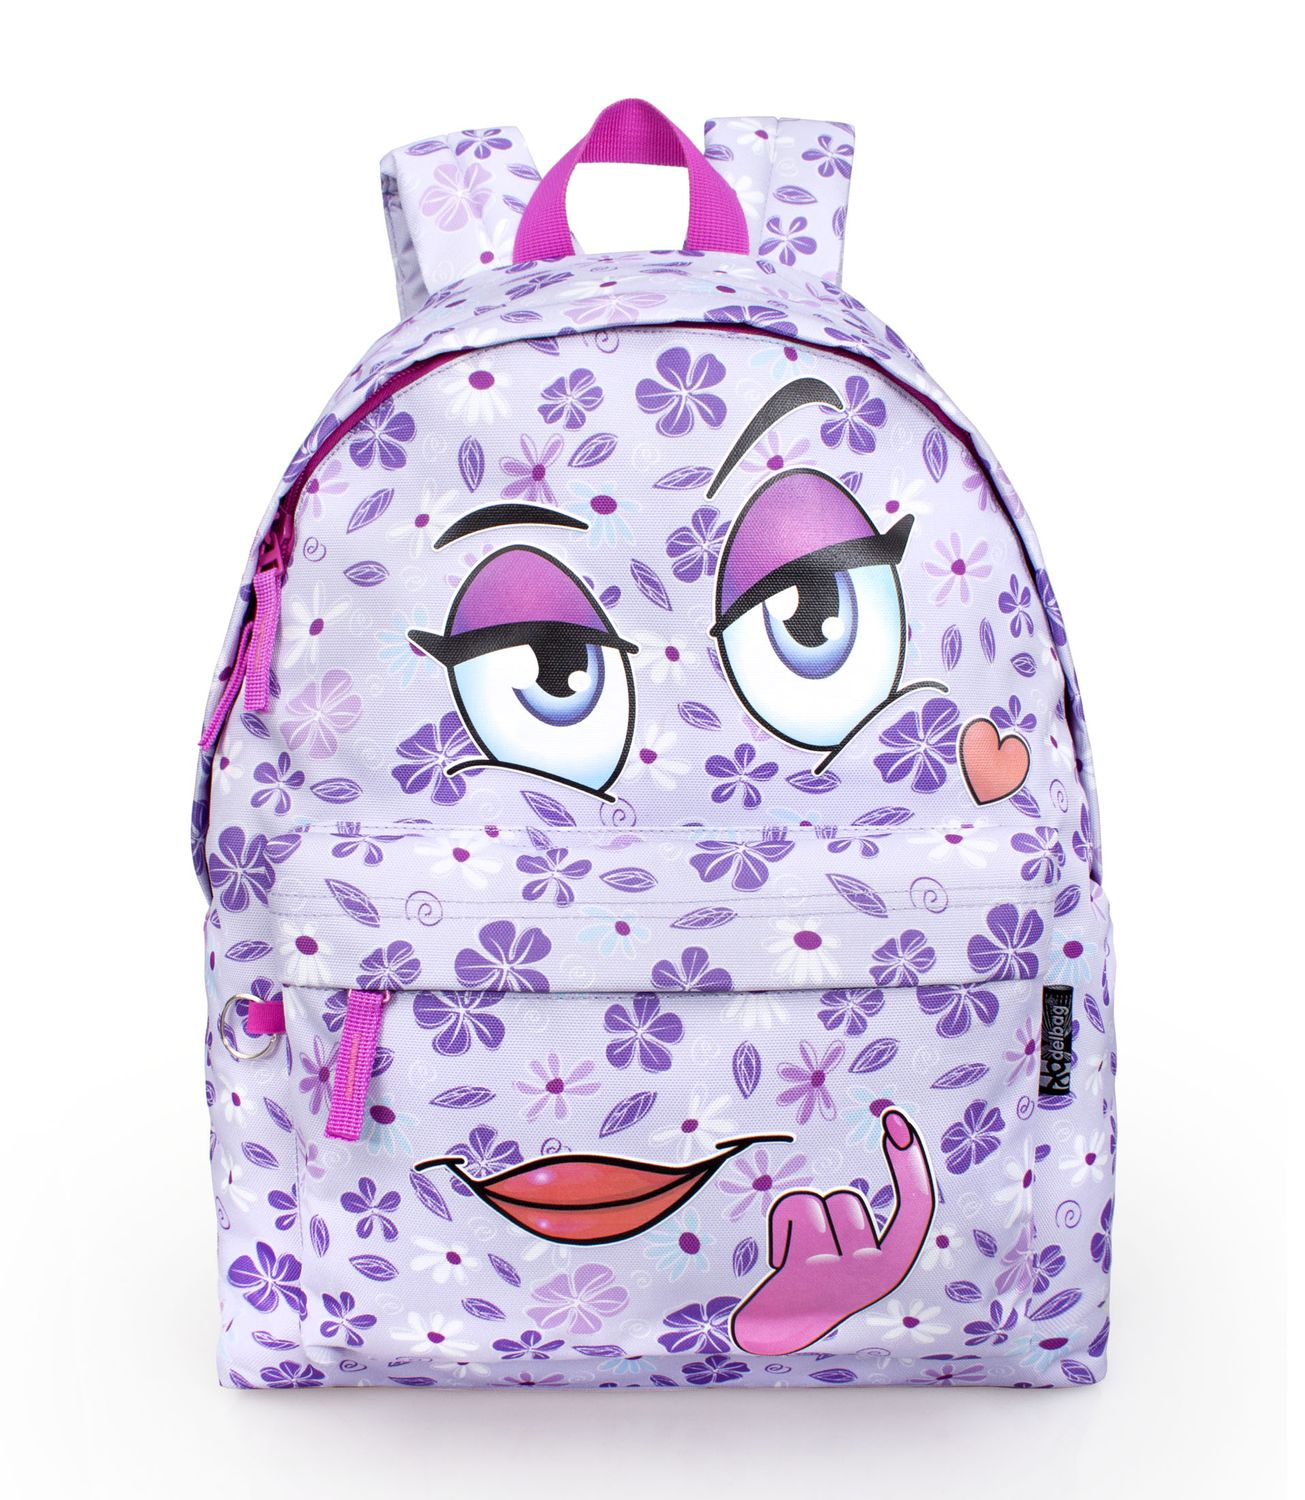 Delbag COME HERE LILAC Violet Backpack